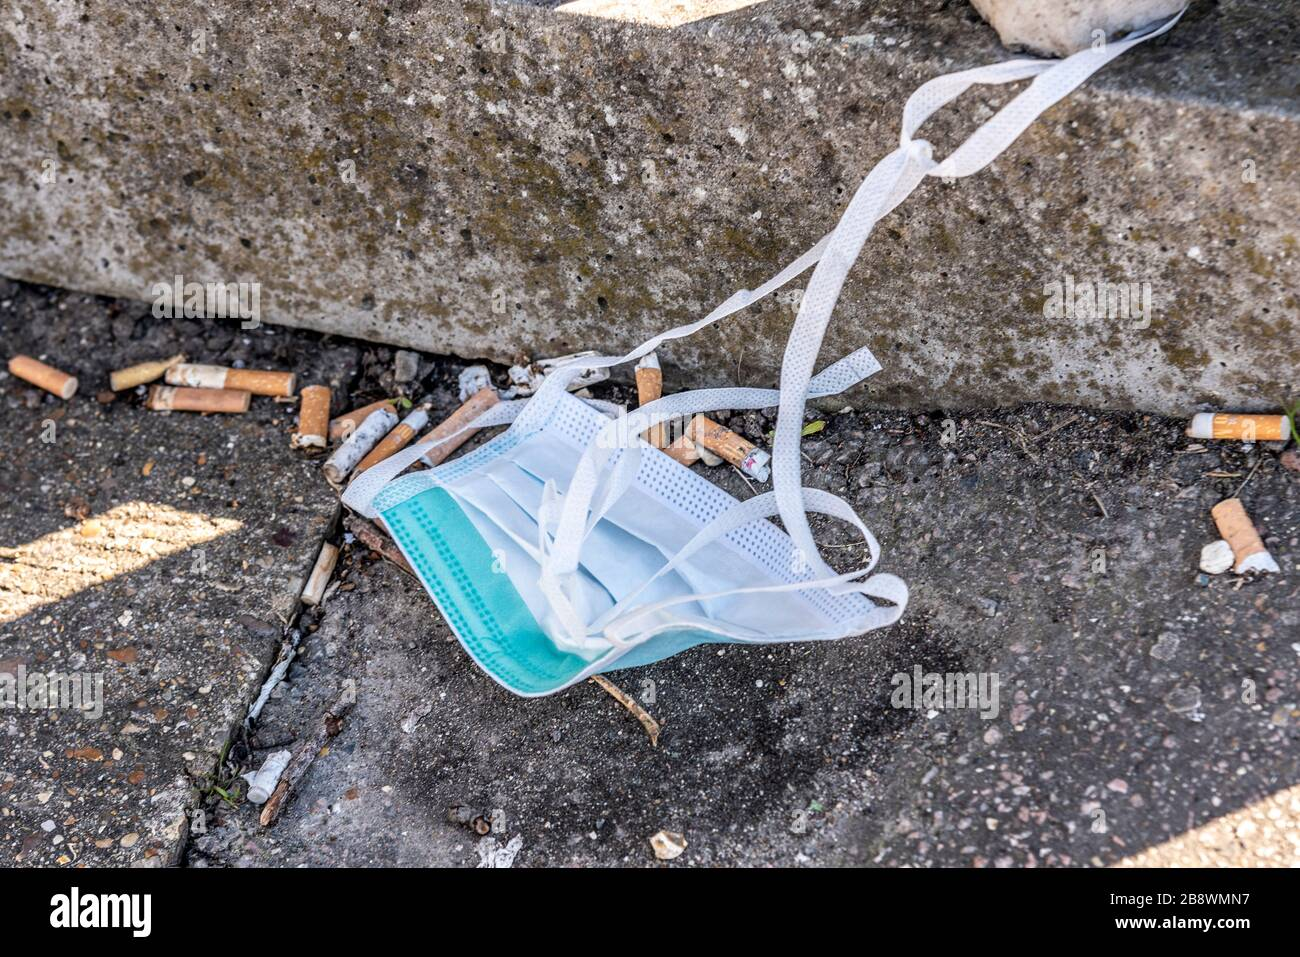 southend-on-sea-essex-uk-23rd-march-2020-the-roads-and-streets-are-much-quieter-after-the-weekend-some-people-are-out-shopping-a-mask-has-been-discarded-in-a-smoking-area-outside-southend-hospital-credit-avpicsalamy-live-news-2B8WMN7.jpg